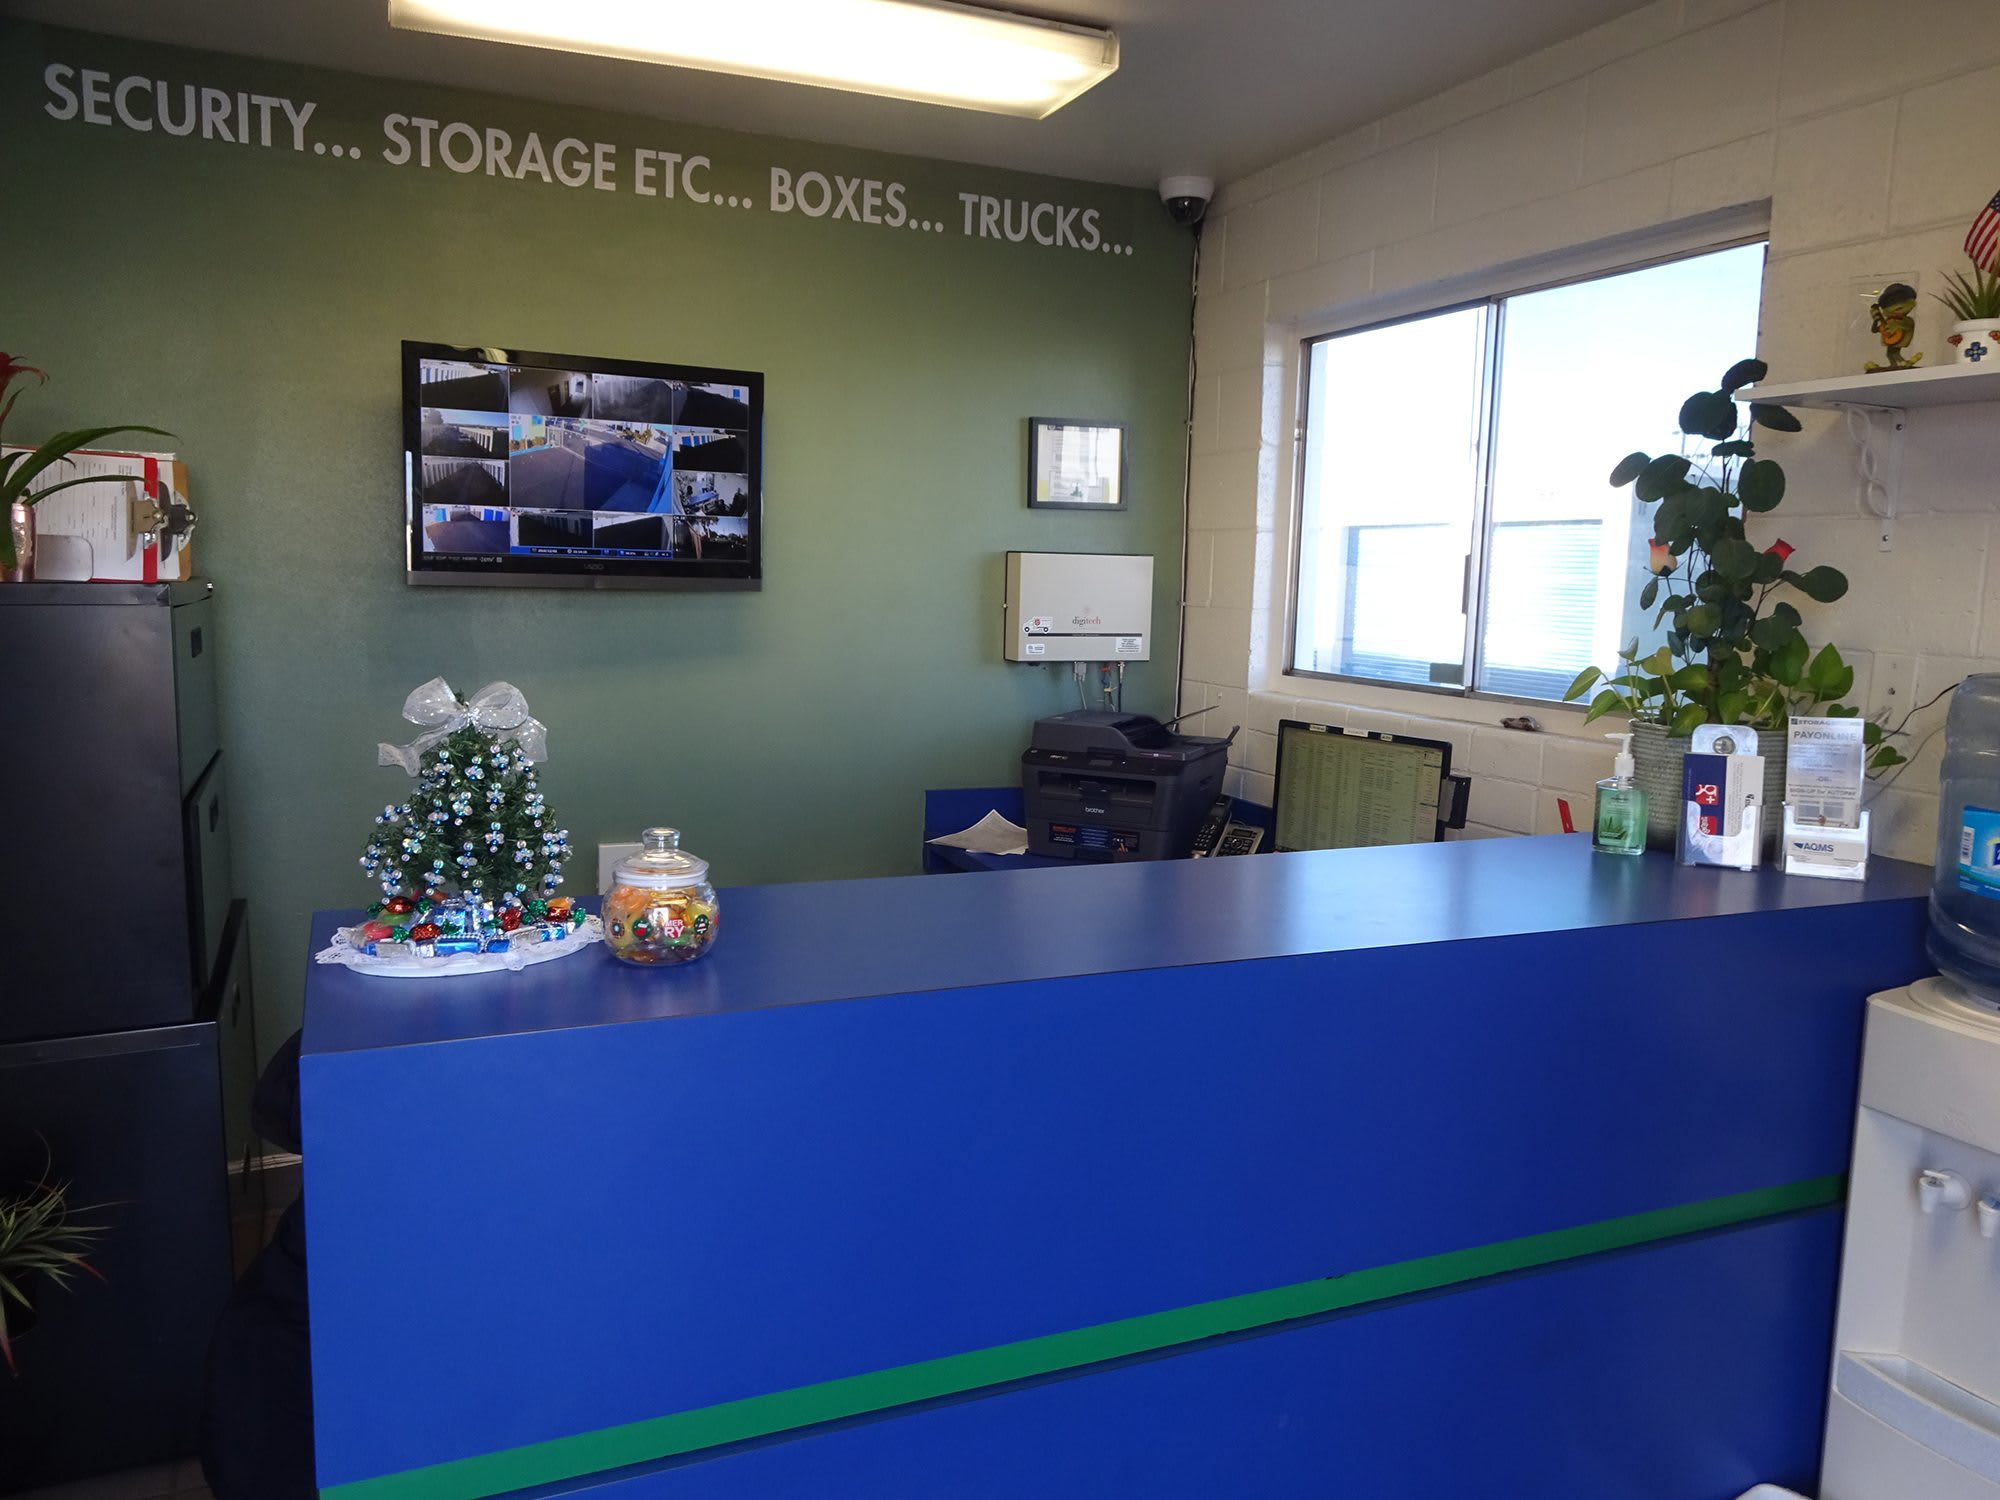 Self Storage Rental Office at Storage Etc... Canoga Park